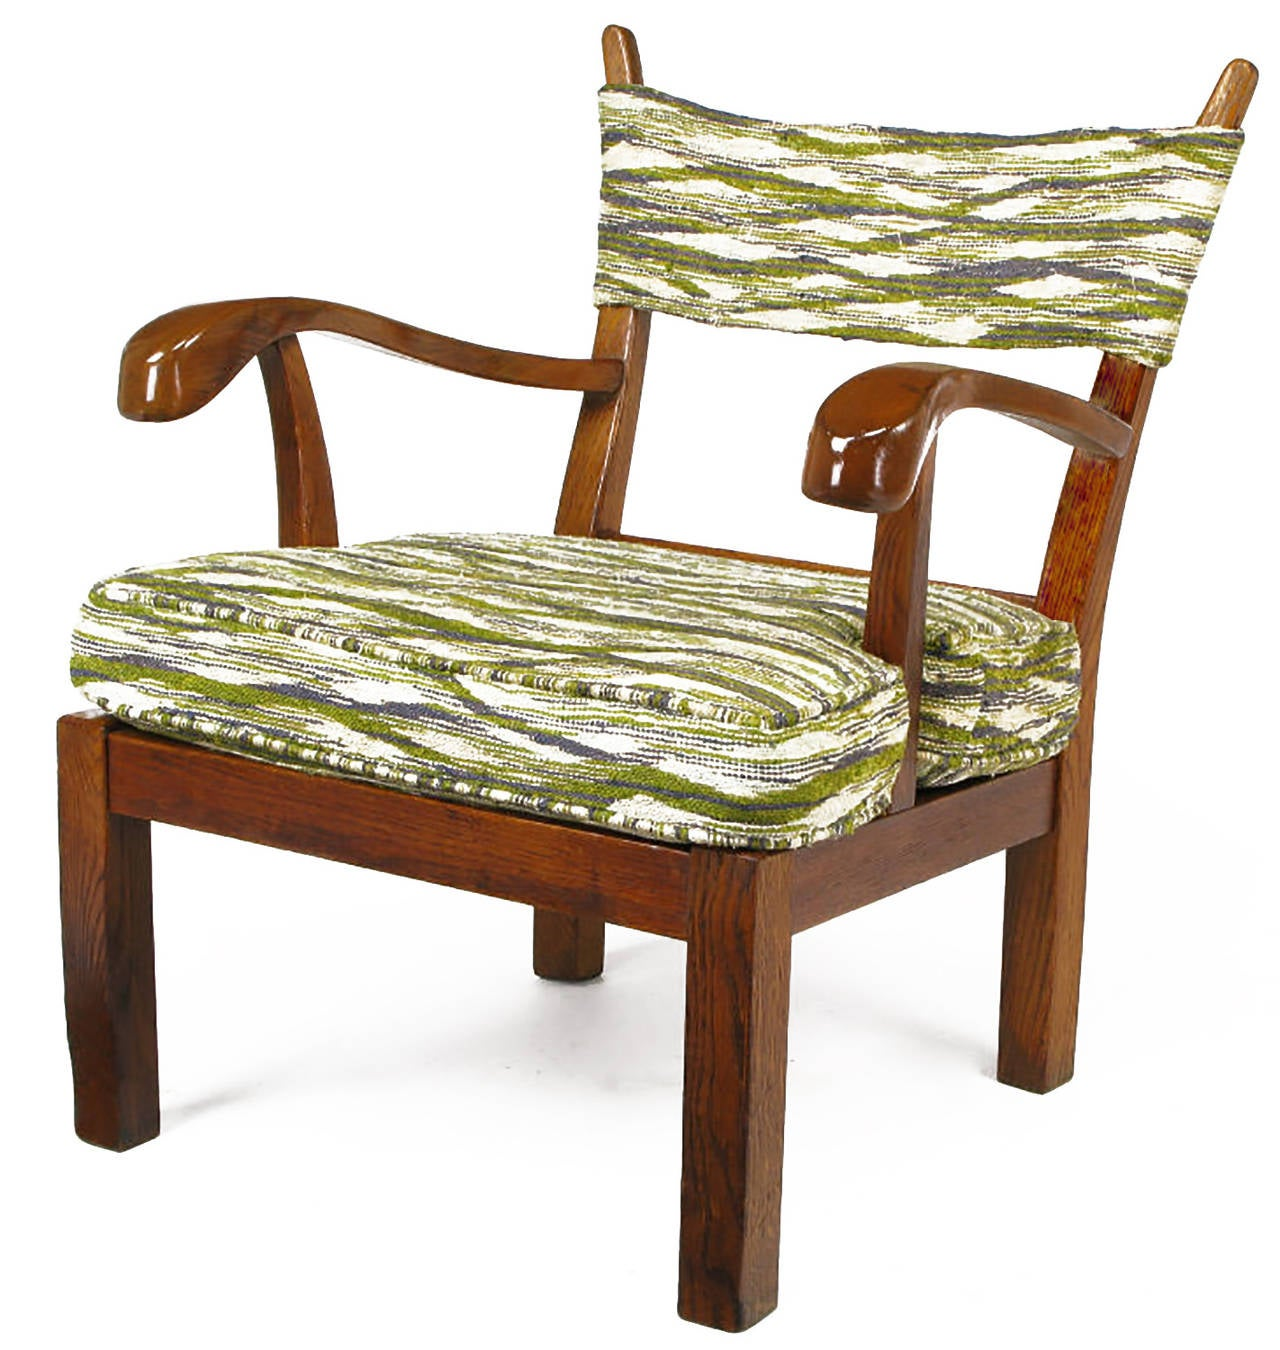 Oak lounge chair upholstered in green, violet blue, and cream fabric, handwoven in the manner of Dorothy Liebes. One-piece strap back supported by tapered risers with carved and exaggerated arms. Chunky squared legs and seat frame.